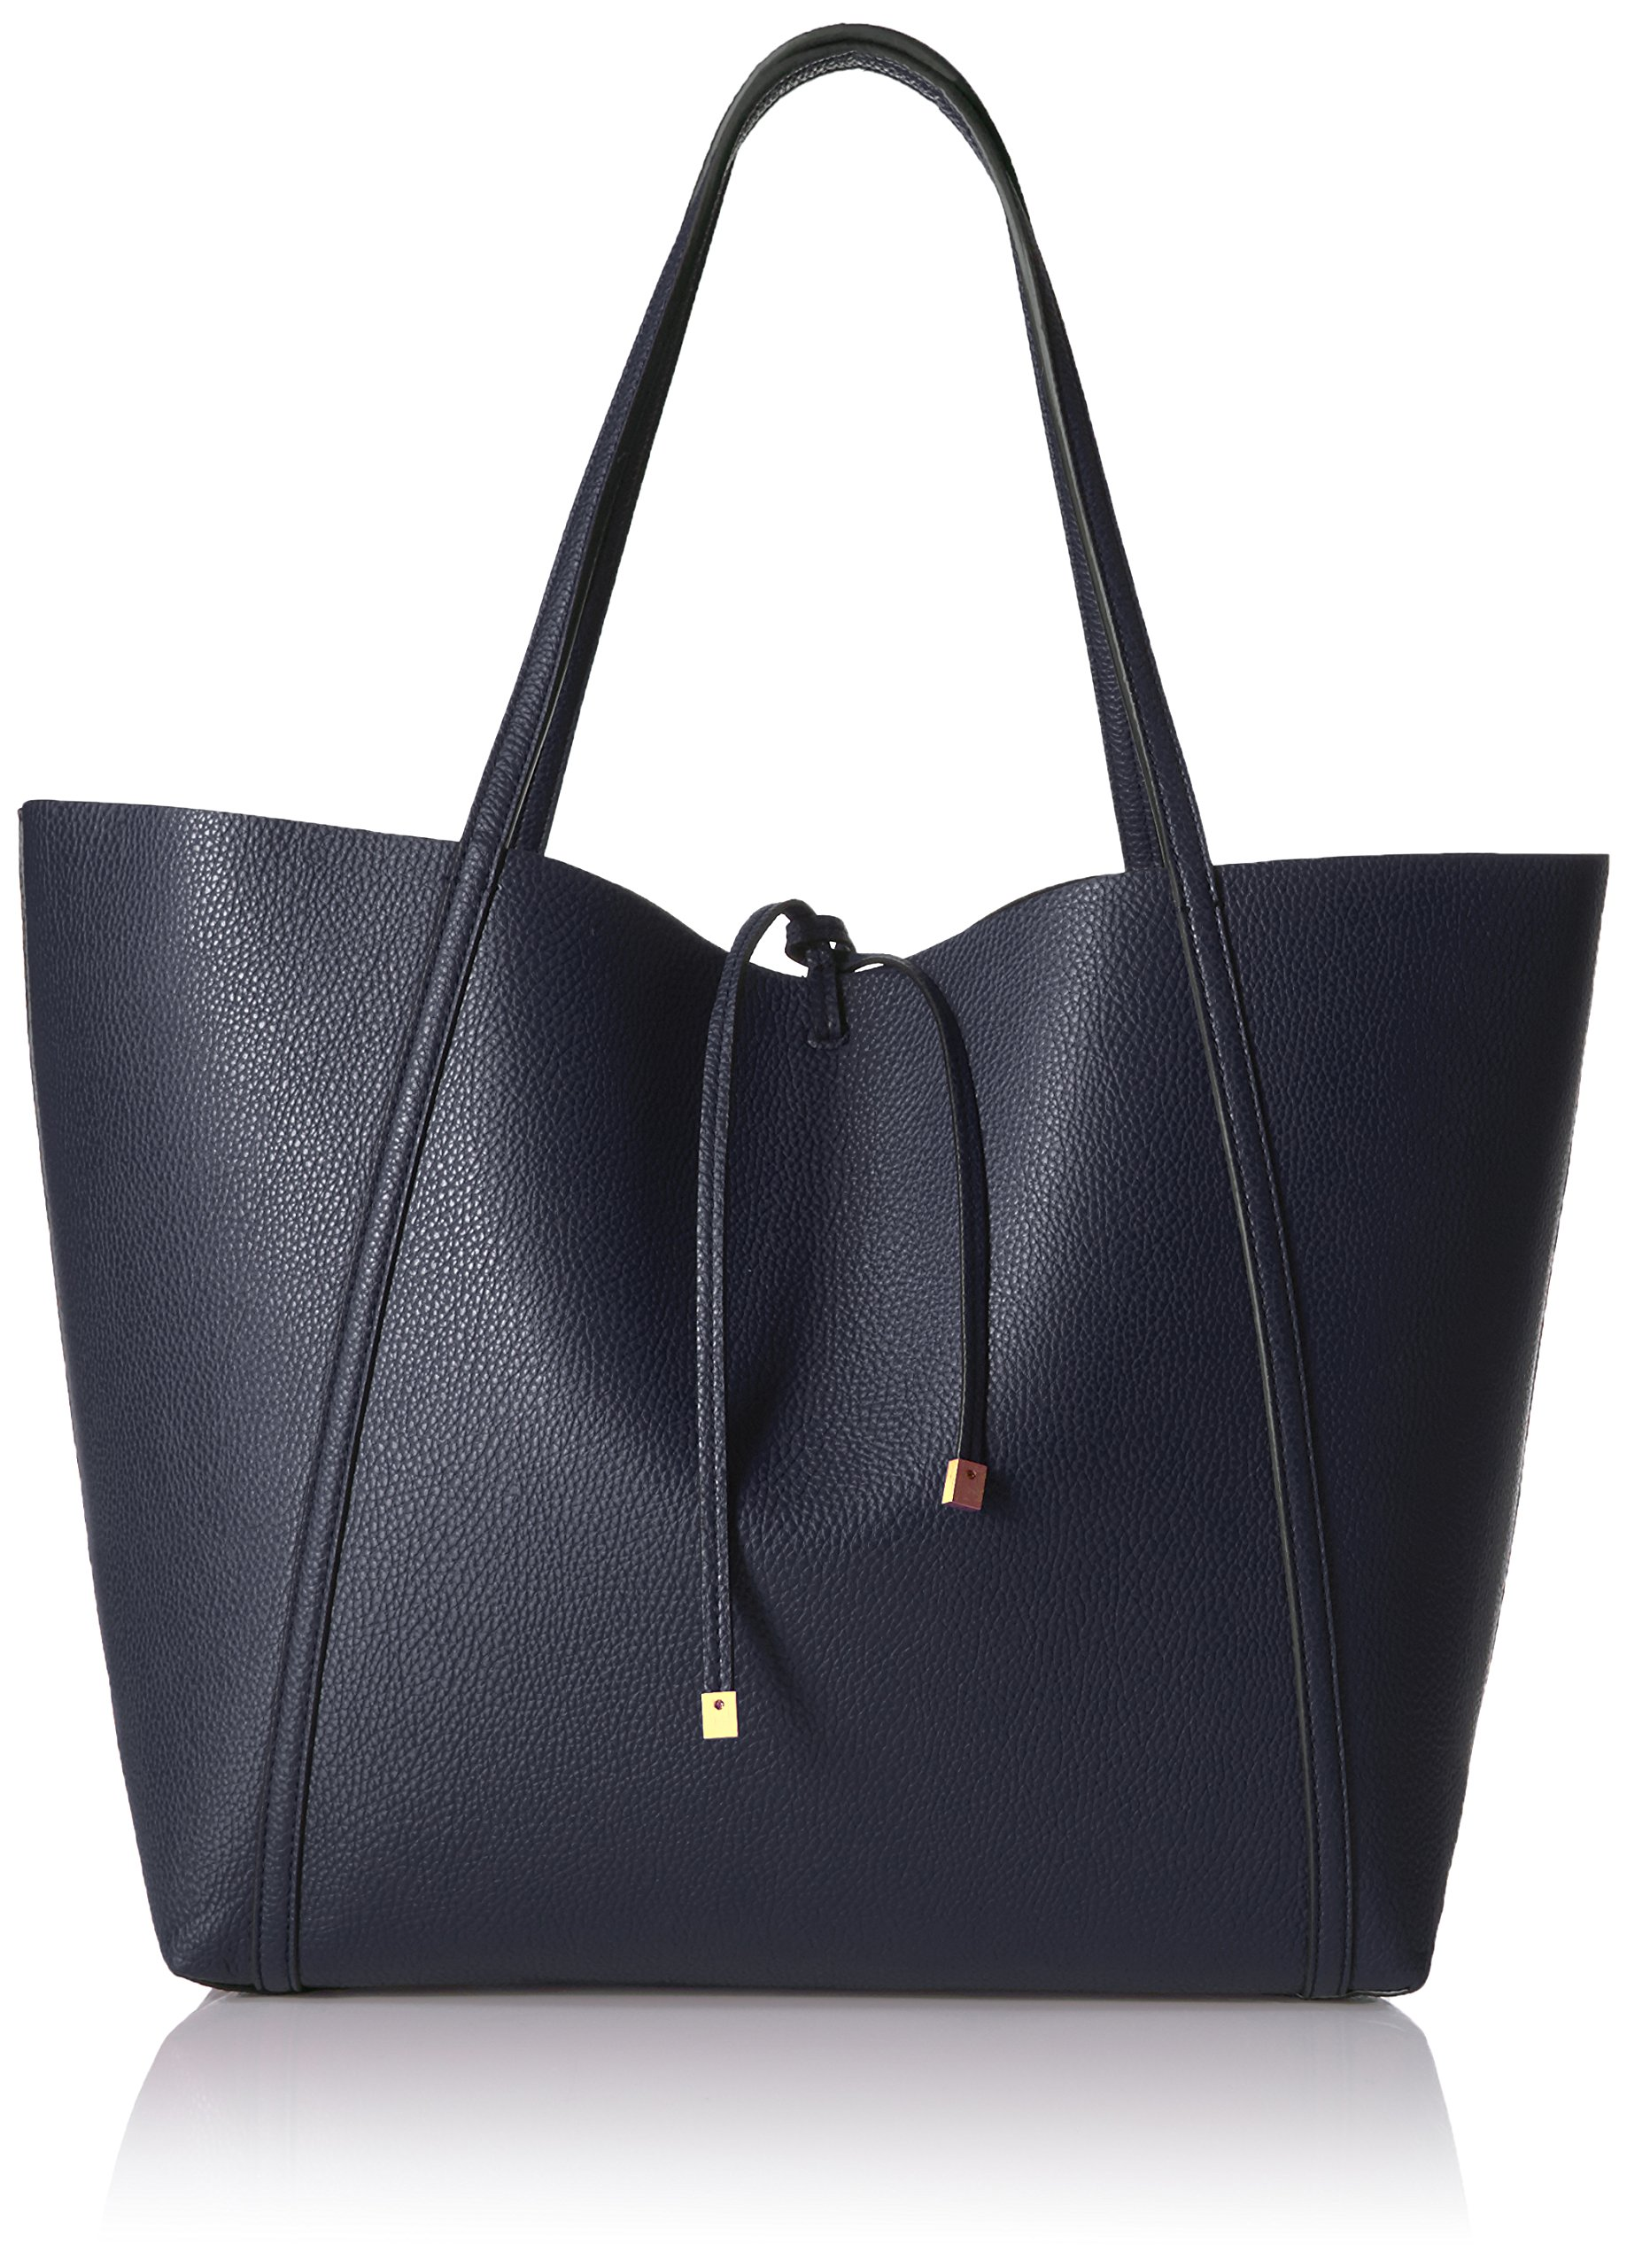 A|X Armani Exchange Large Tote, Evening Blue, One Size